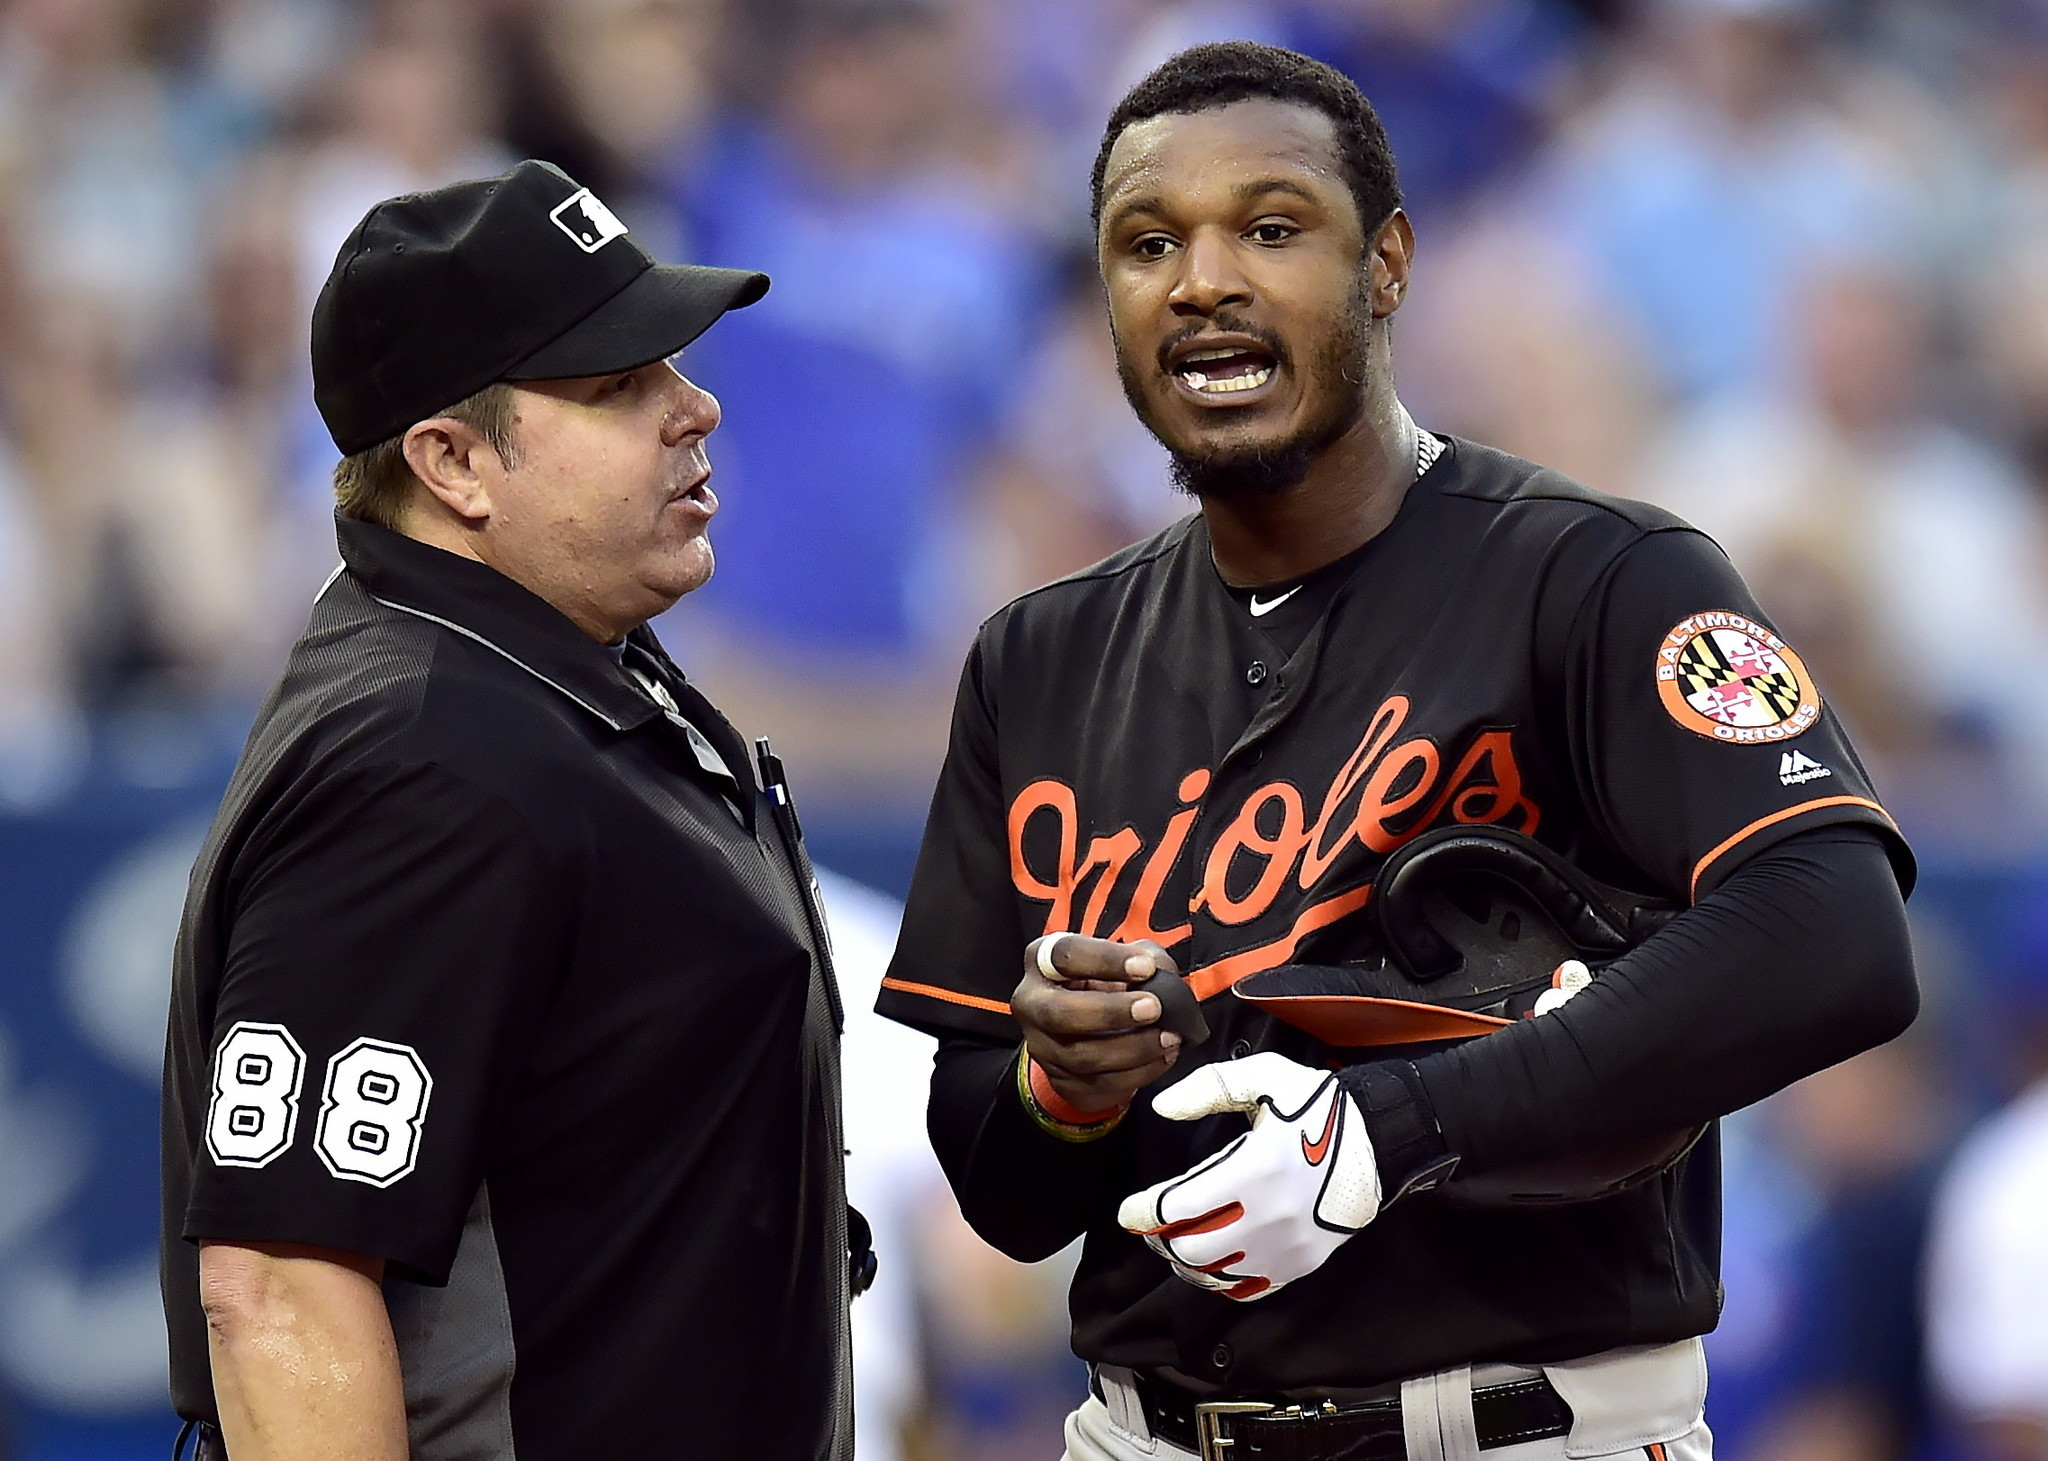 Bal-orioles-rewind-looking-back-at-friday-s-8-7-10-inning-loss-to-the-blue-jays-20180721